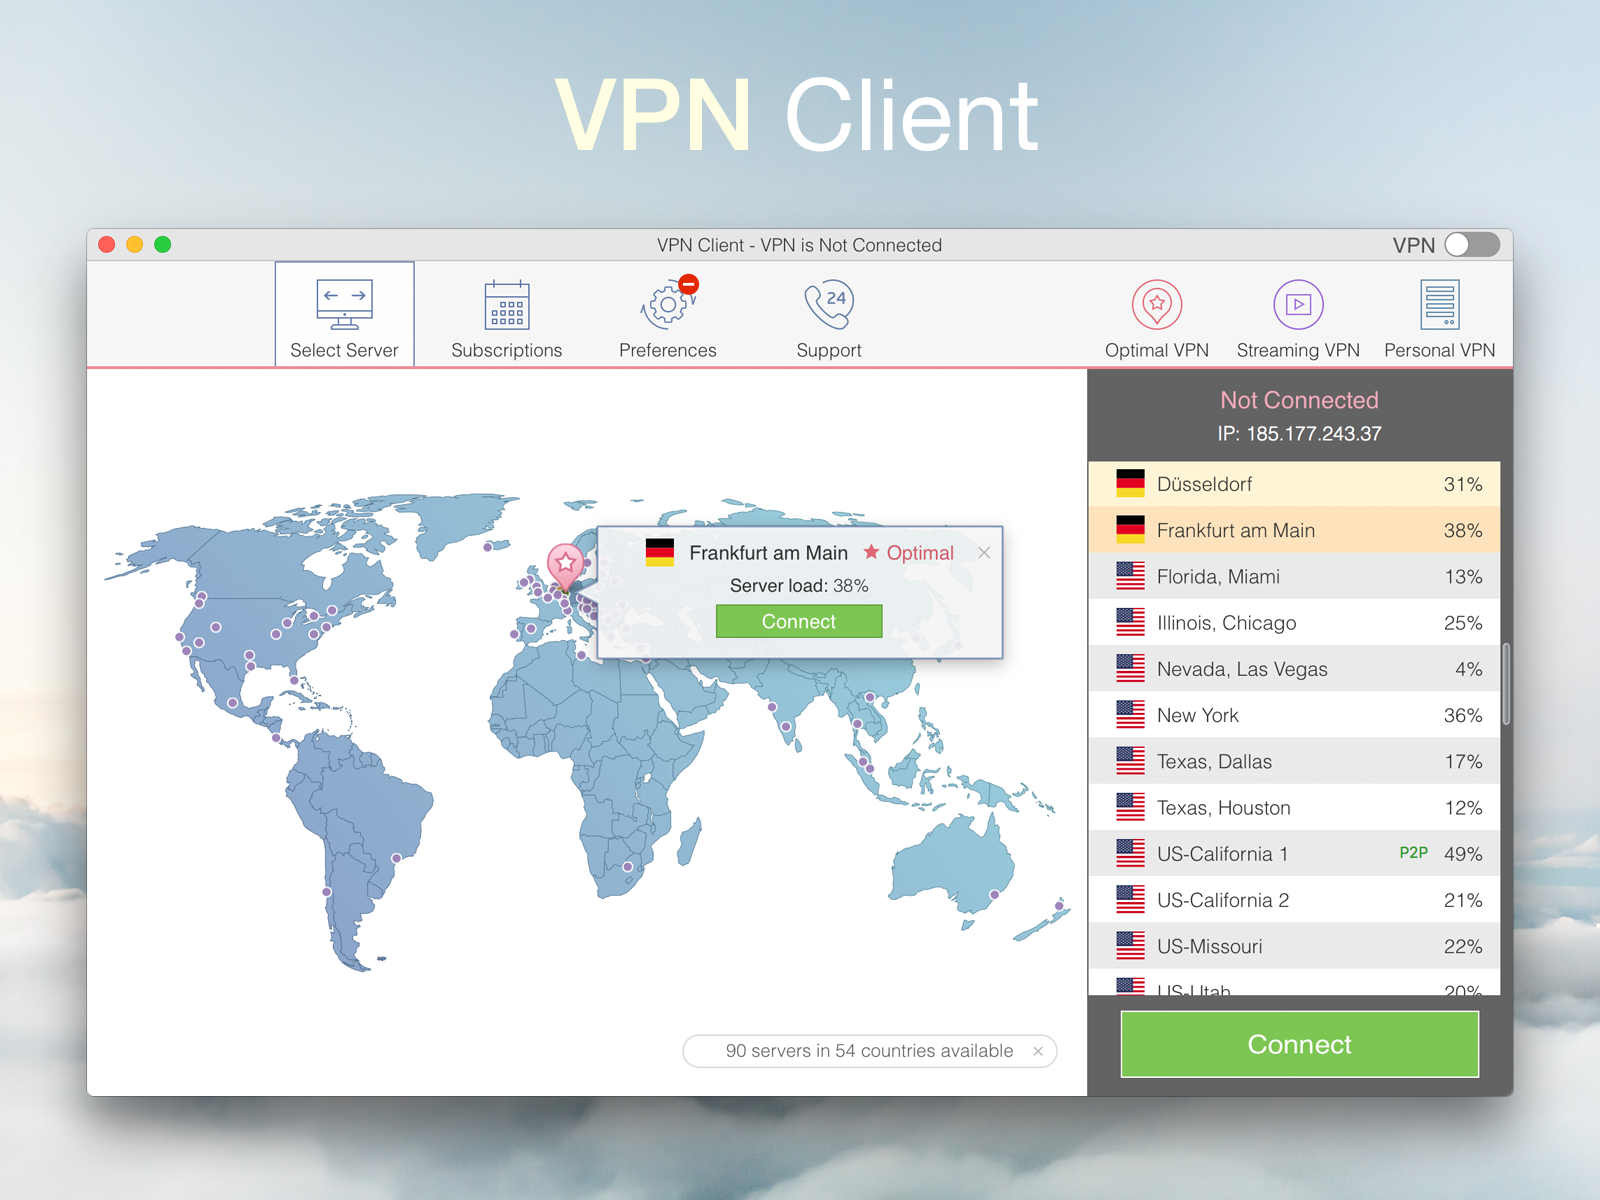 VPN Client by Julia Ivanova on Dribbble